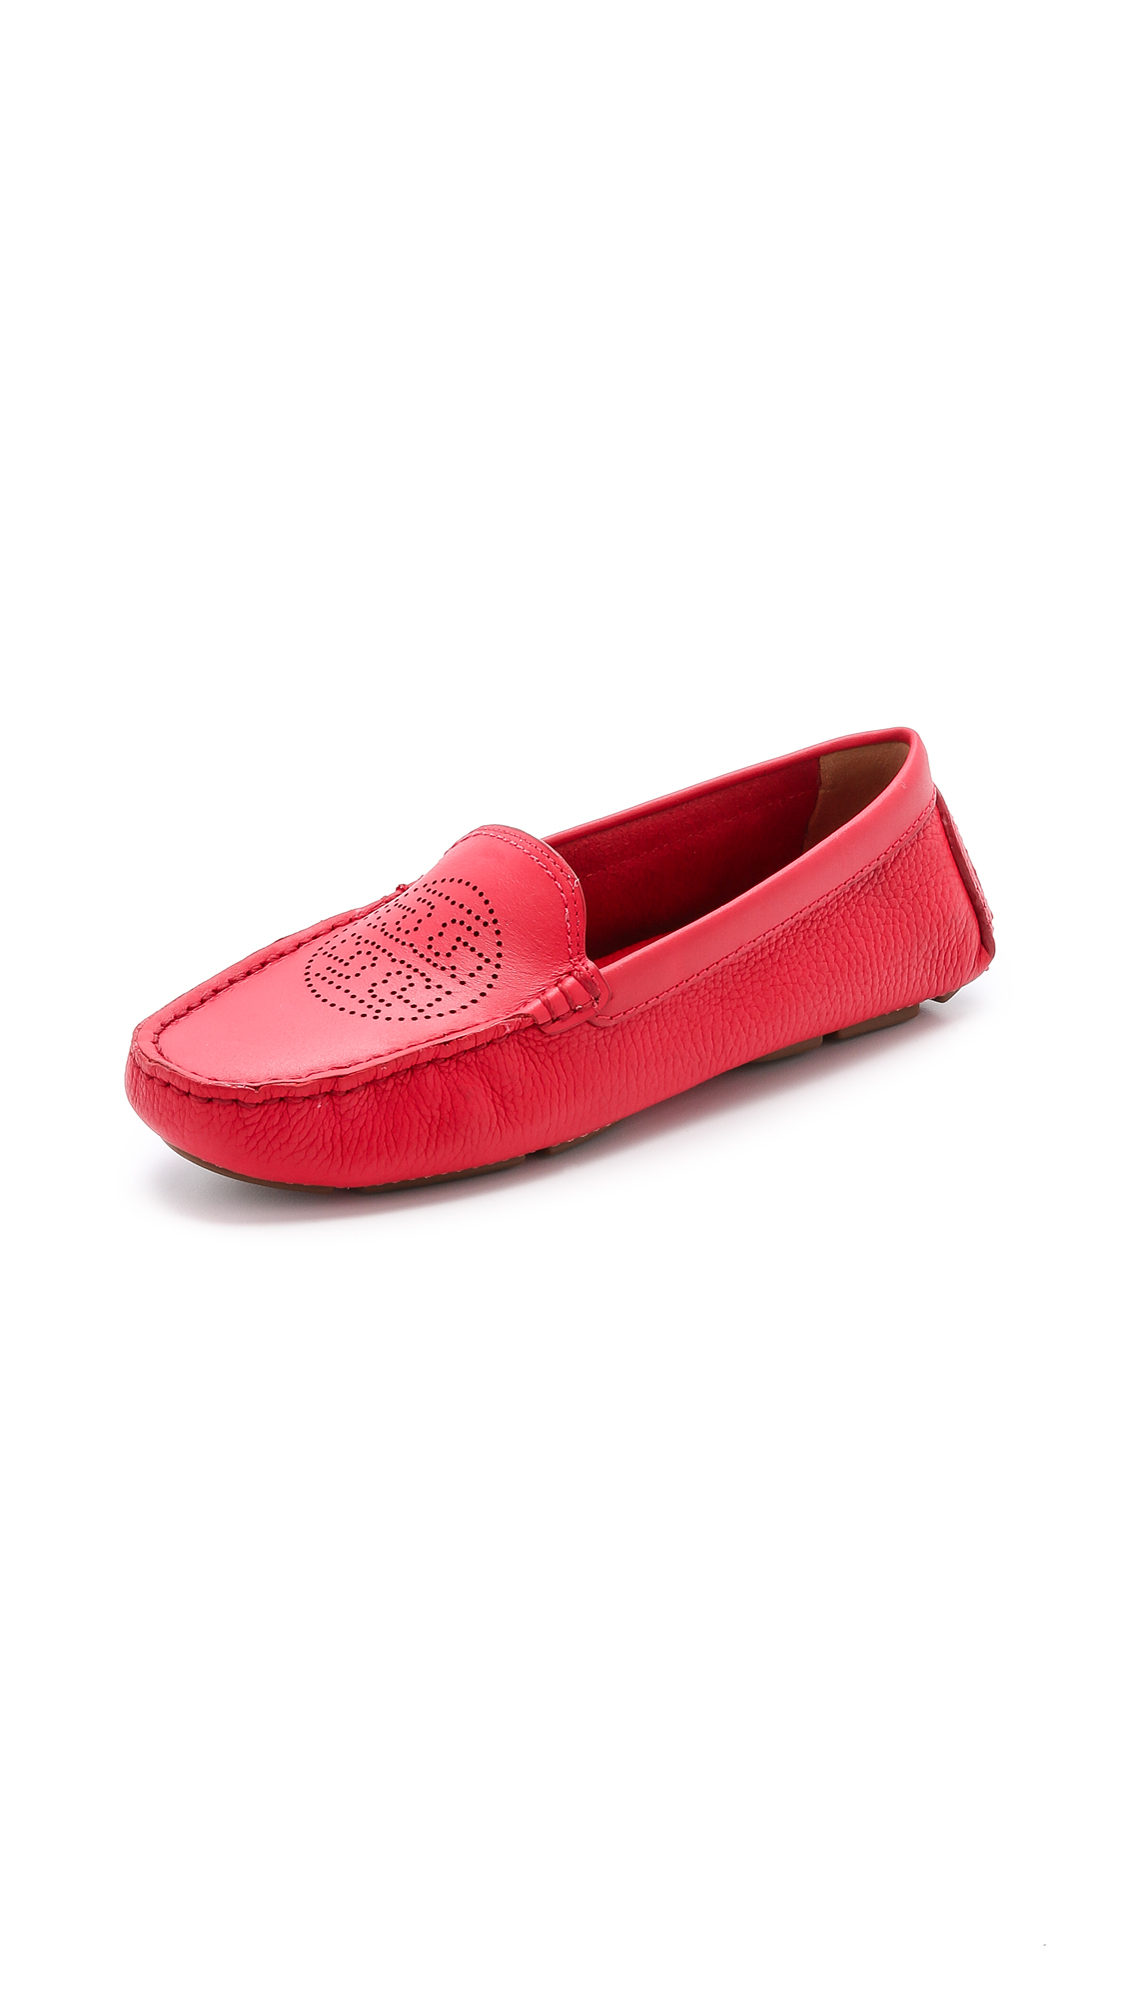 7637c4ae3a41 Lyst - Tory Burch Perforated Logo Driver Flats - Brilliant Red in Red